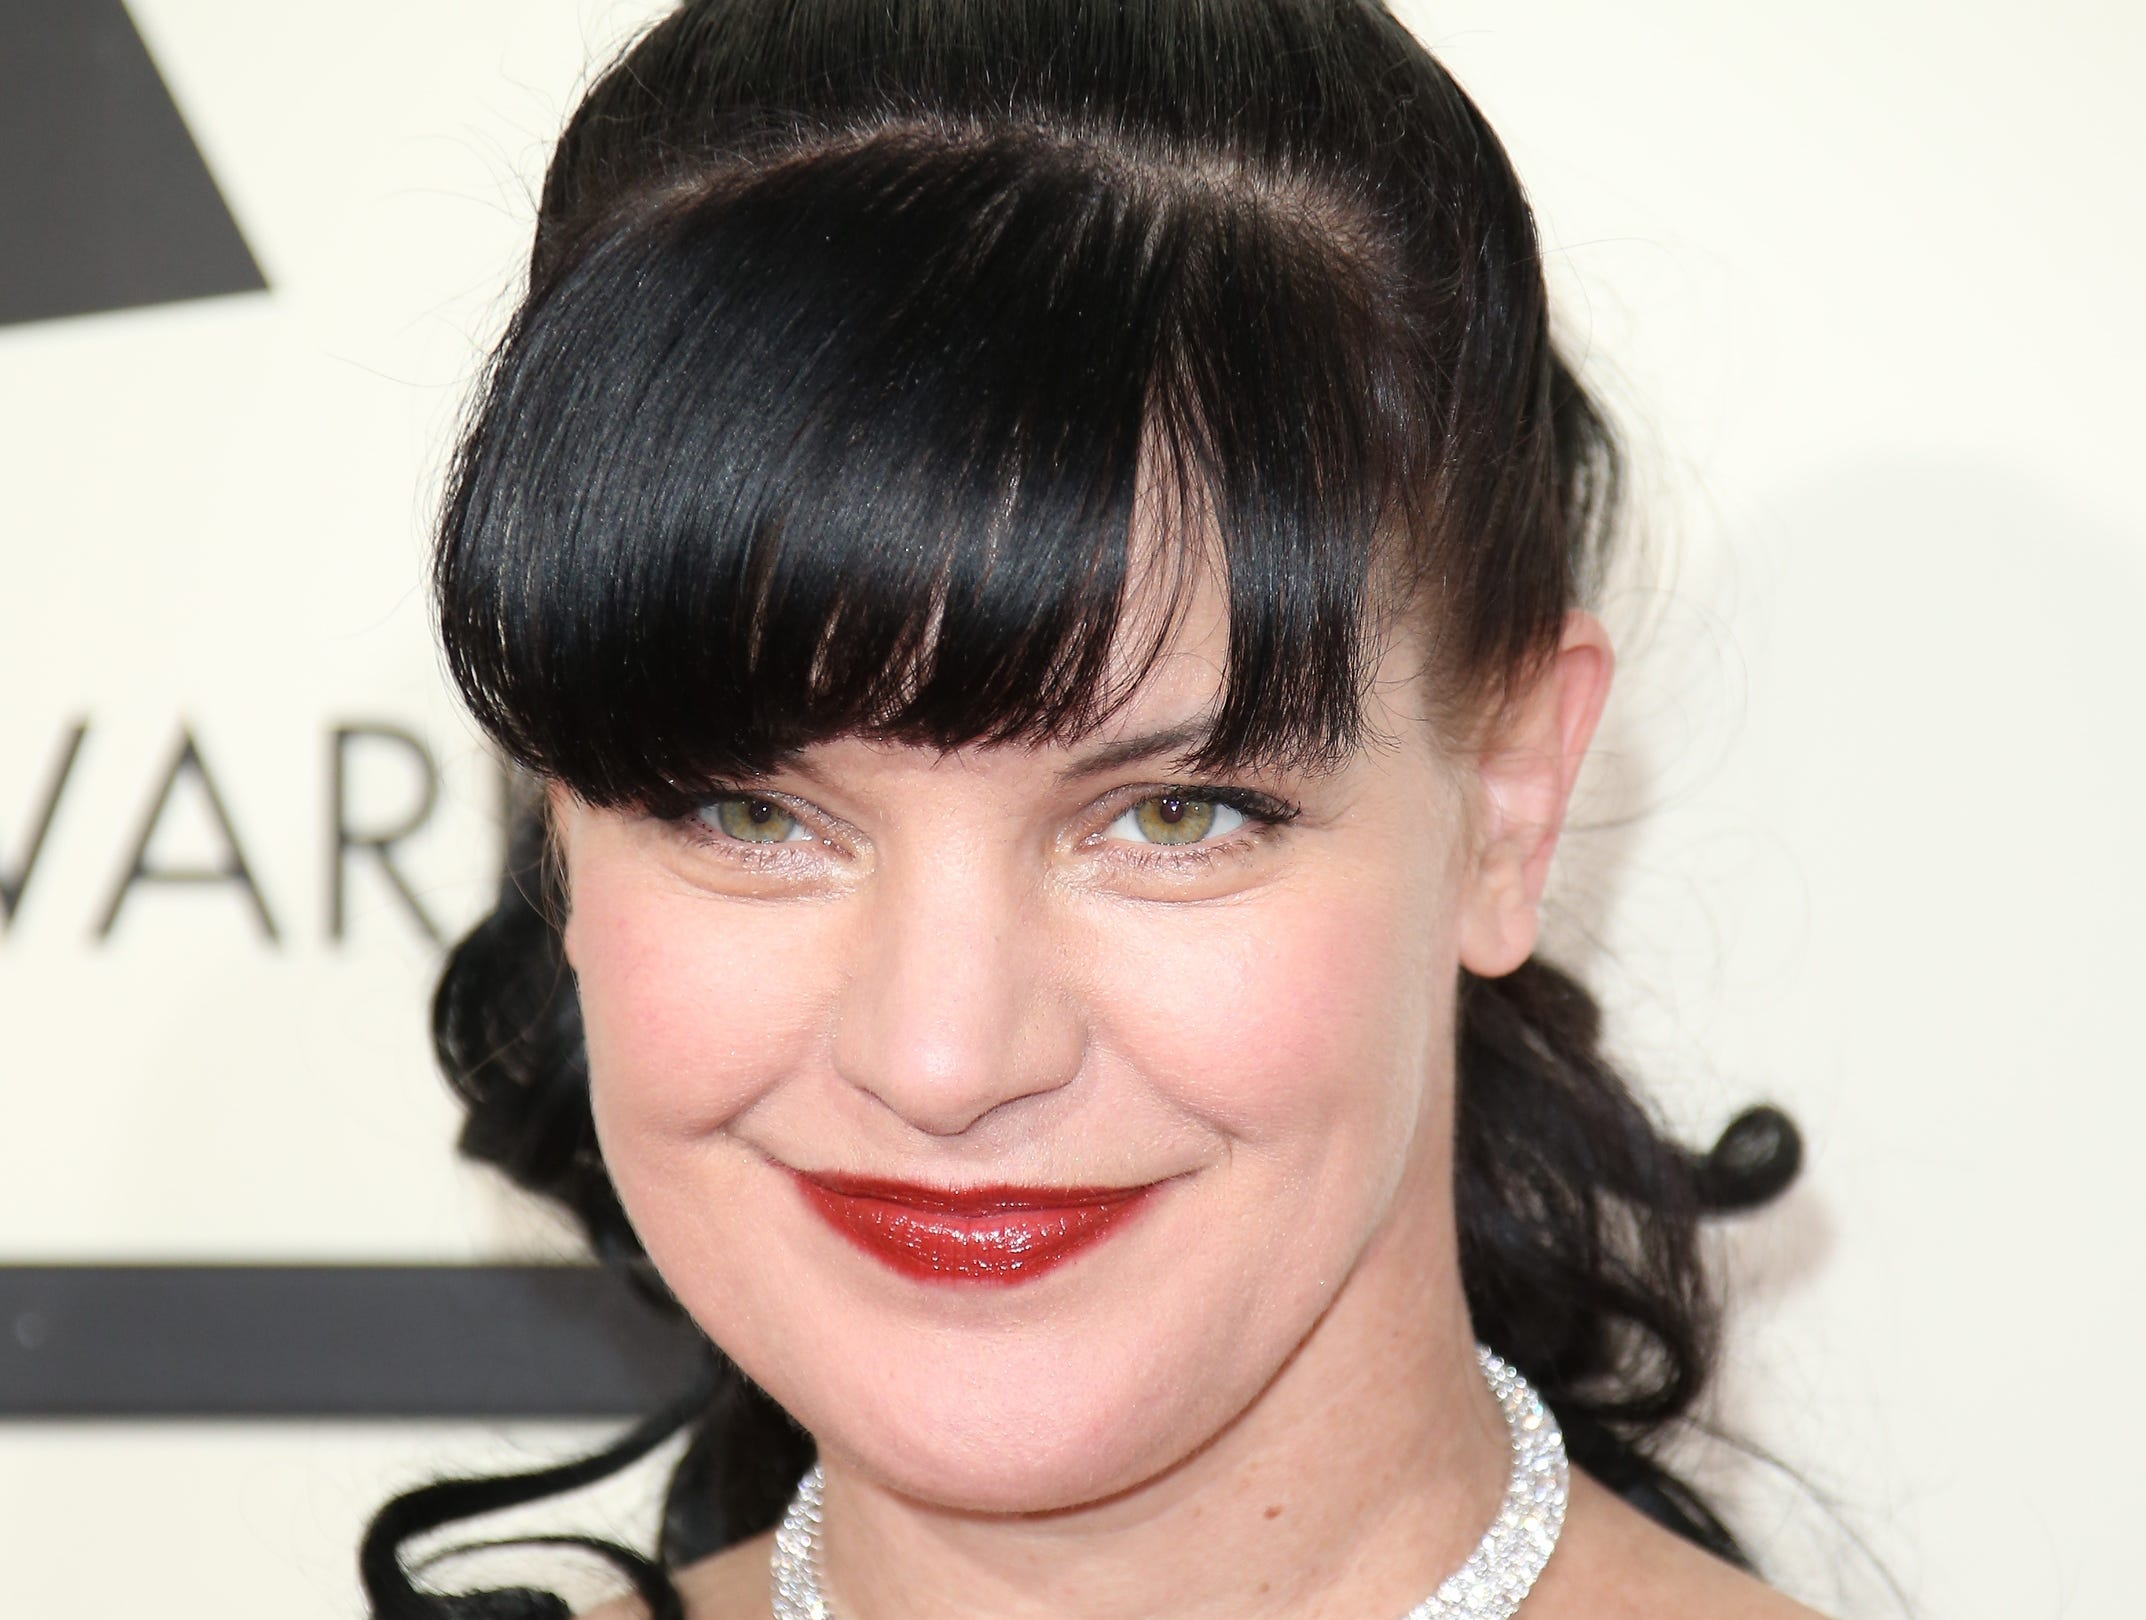 Pauley Perrette turns 50 on March 27.